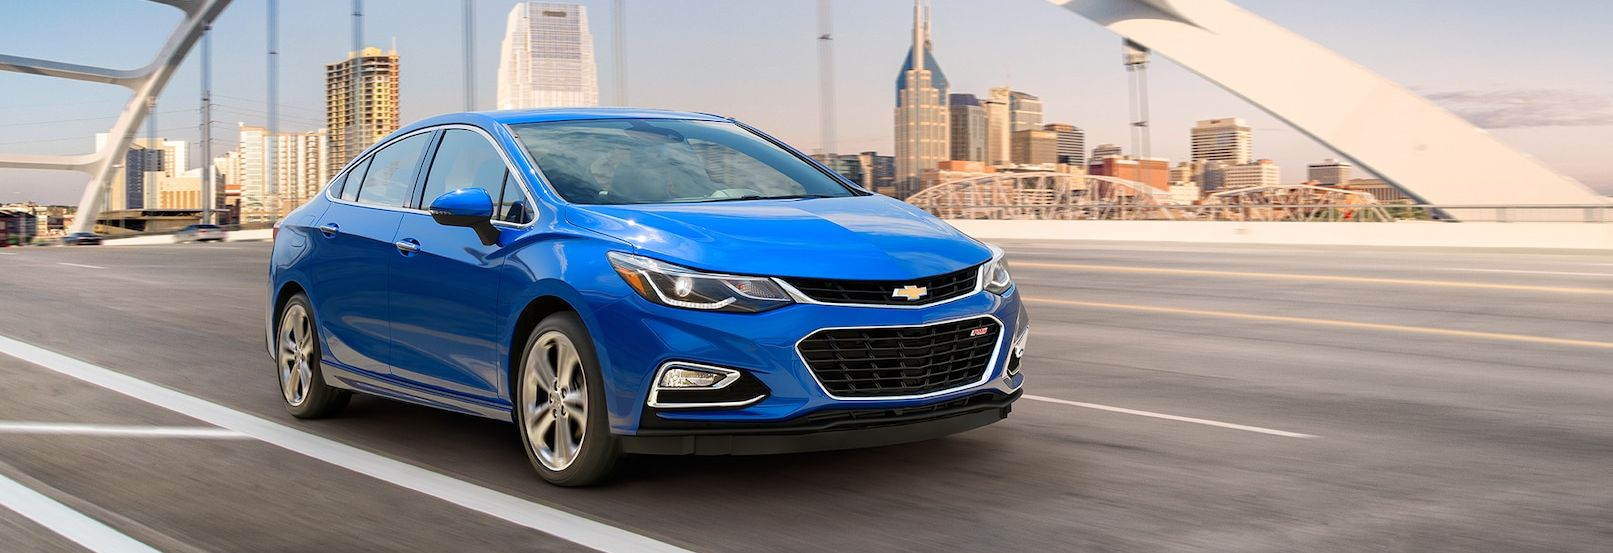 2018 chevrolet cruze for sale near lansing in christenson chevrolet rh christensonchevy com